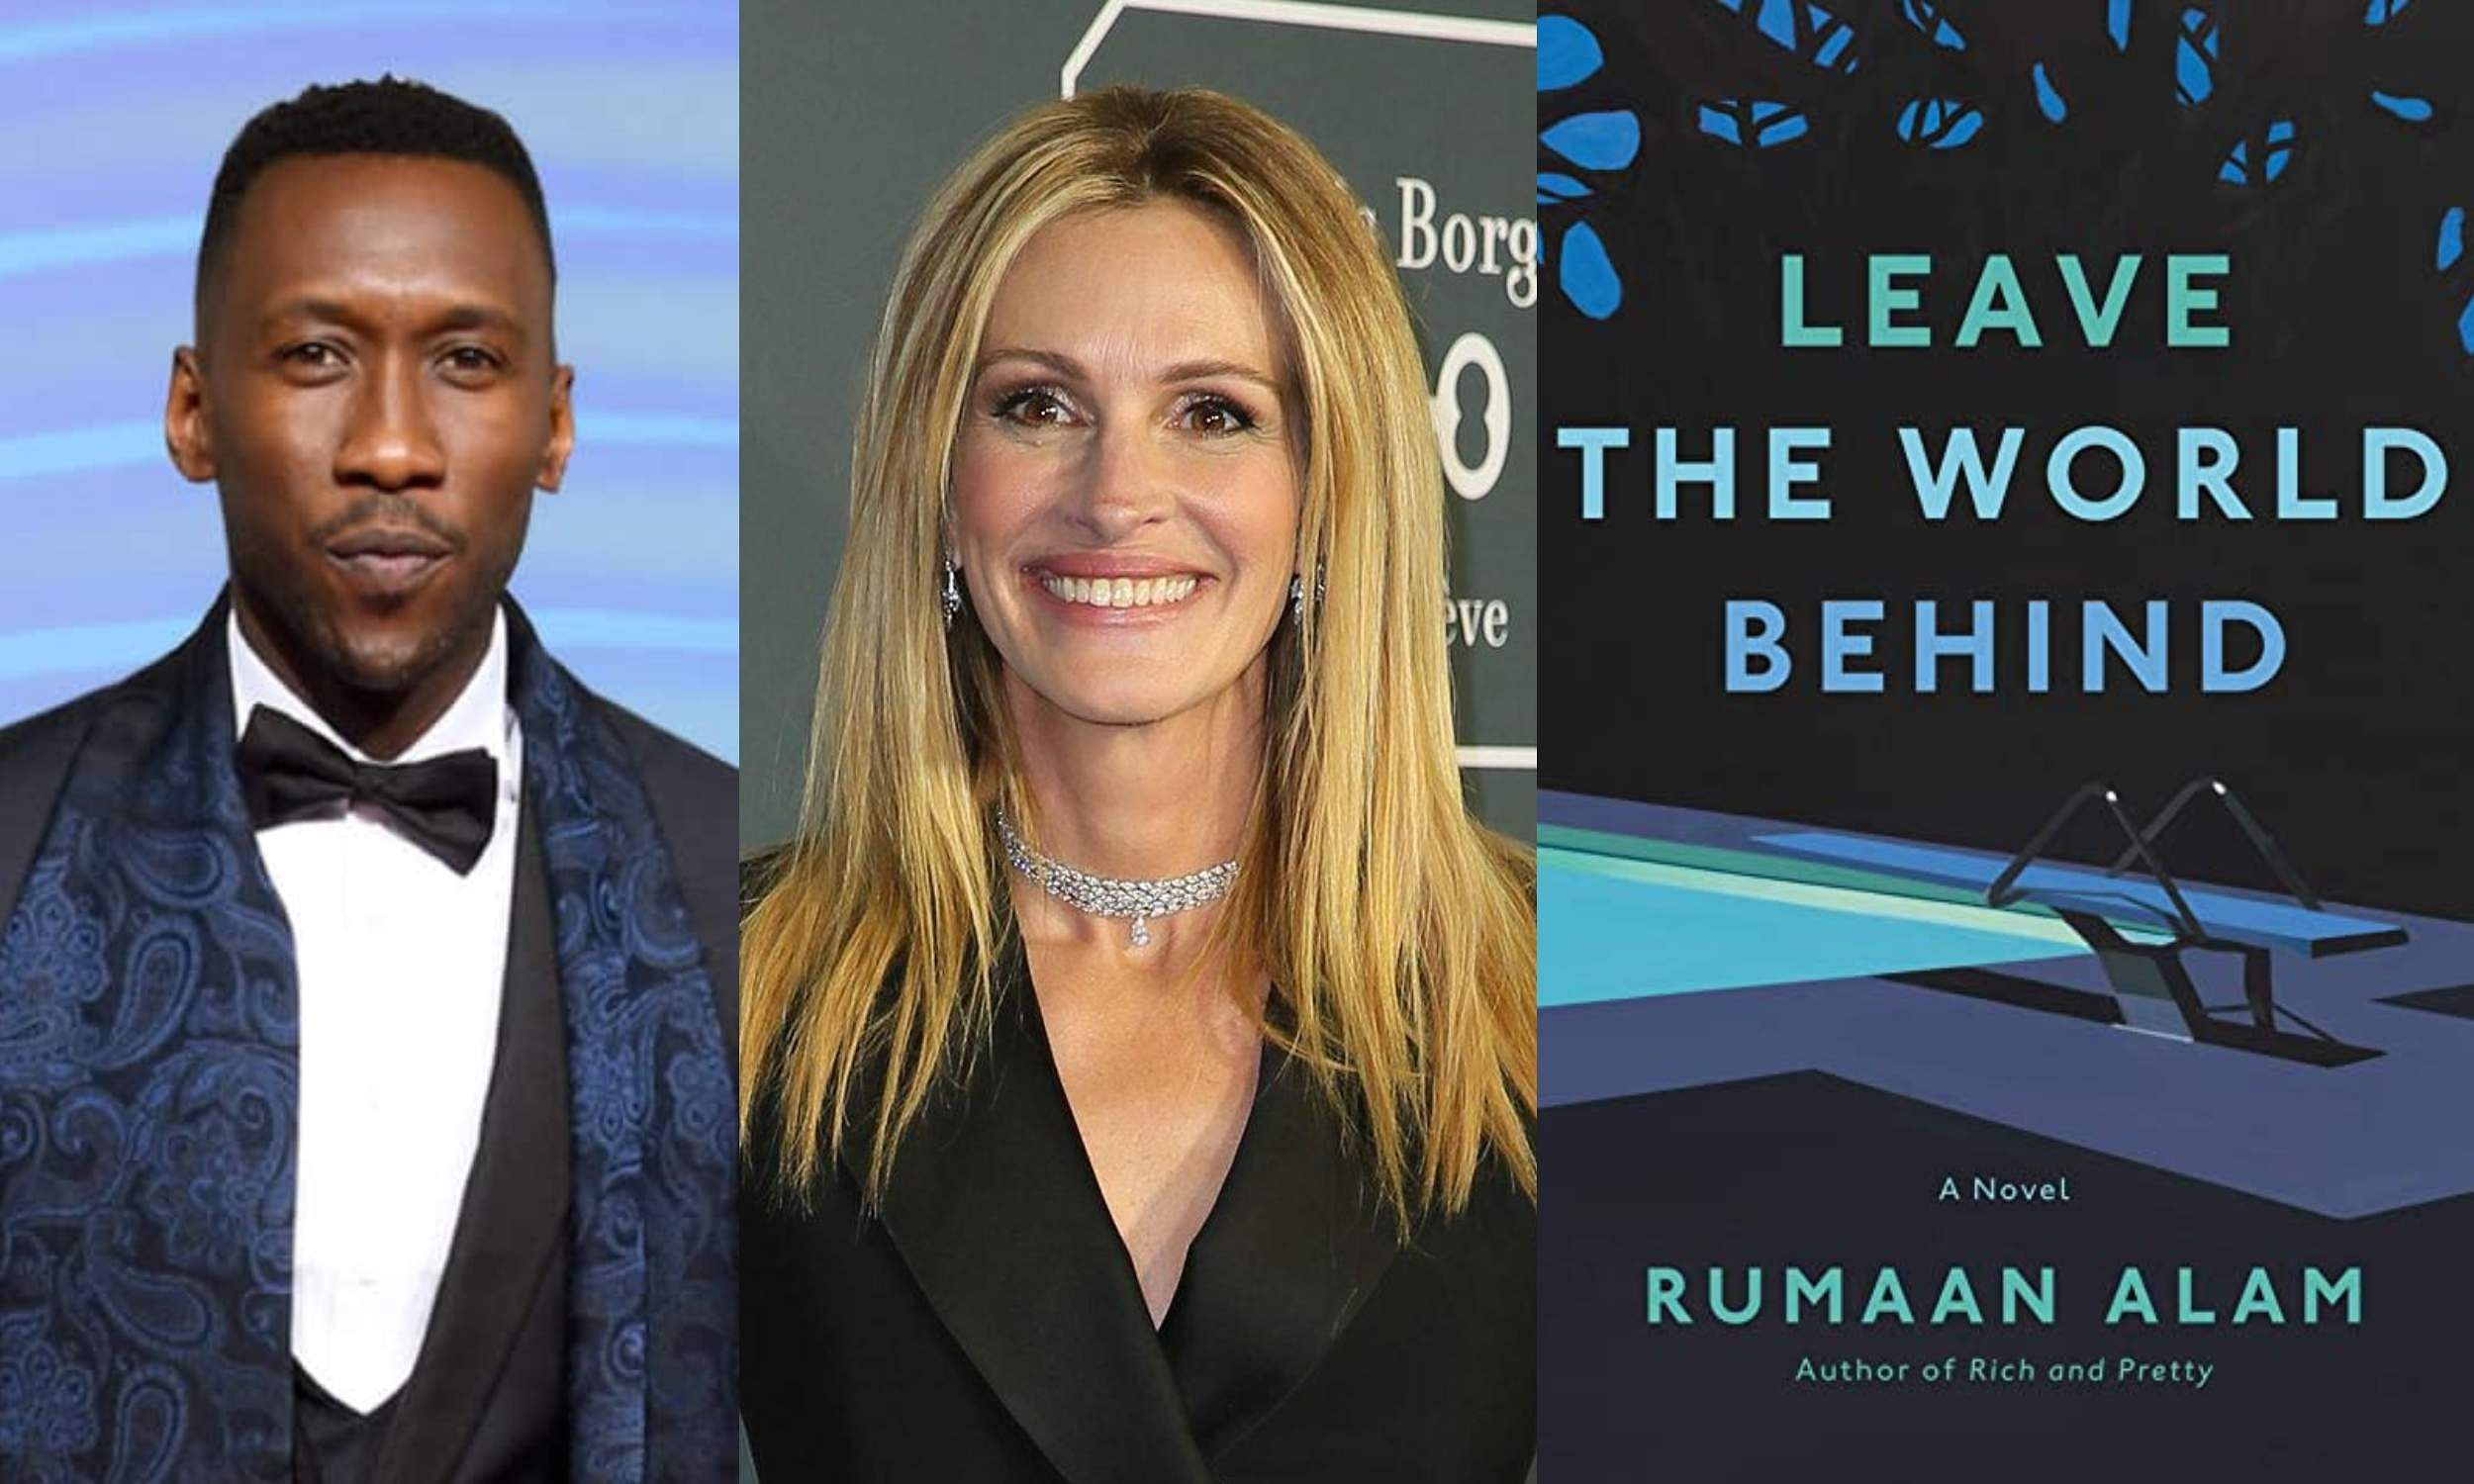 More Details On the Netflix Original 'Leave The World Behind' With Julia Roberts